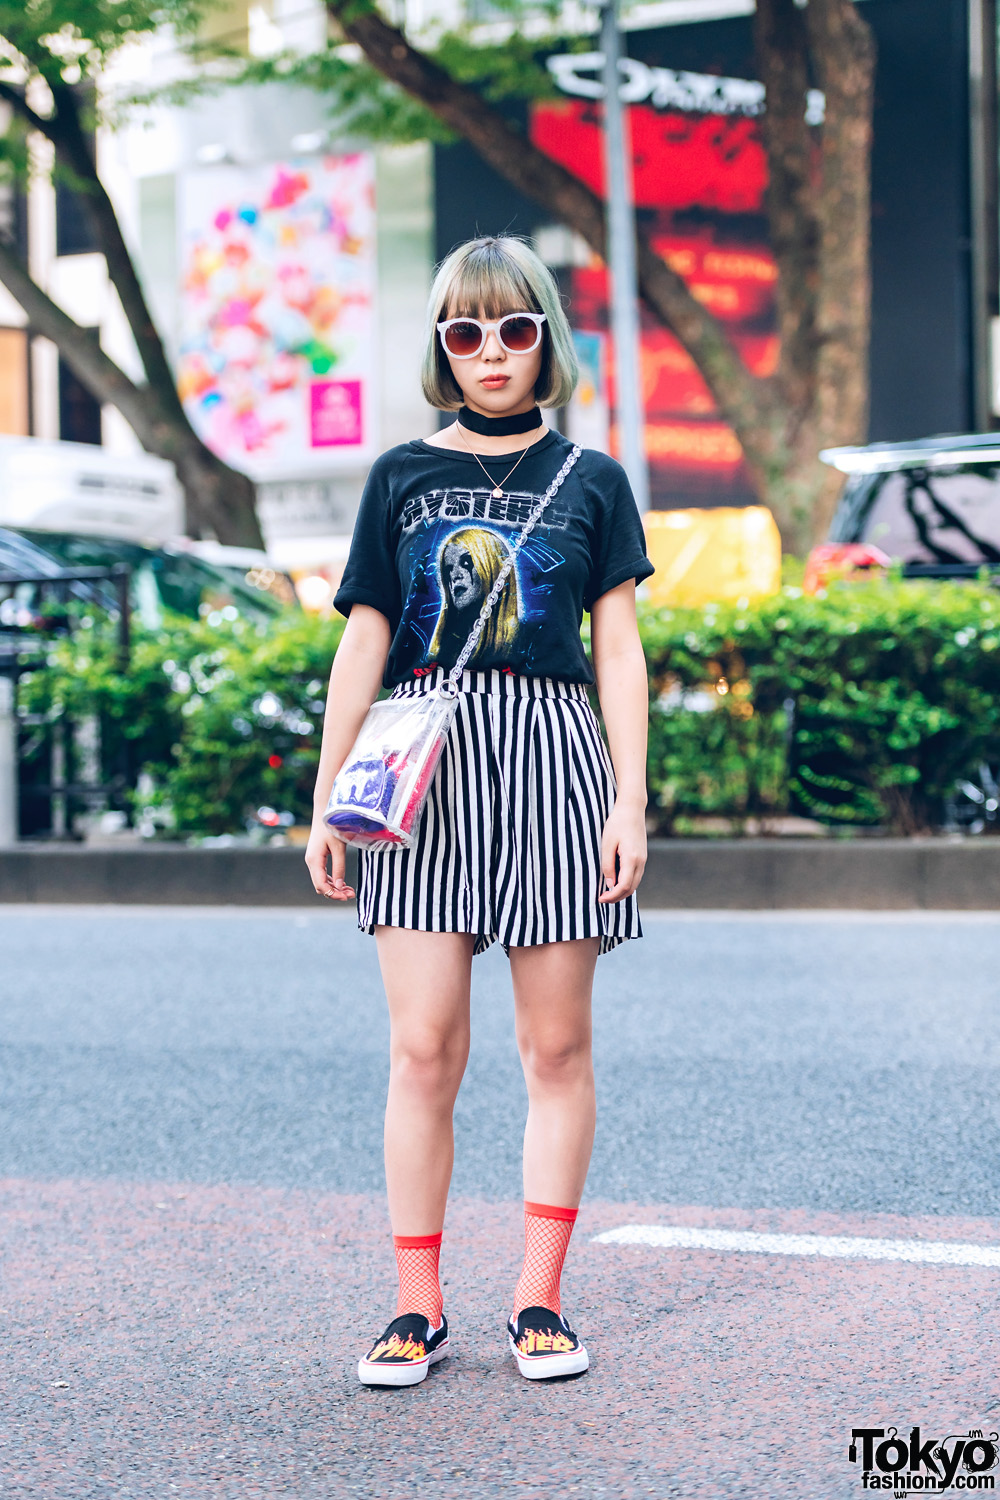 525456ab4ab30 Casual Chic Street Style in Harajuku w/ Hysteric T-Shirt, Striped Shorts, Fishnet  Socks, Clear Bucket Bag & Vans Slip-Ons